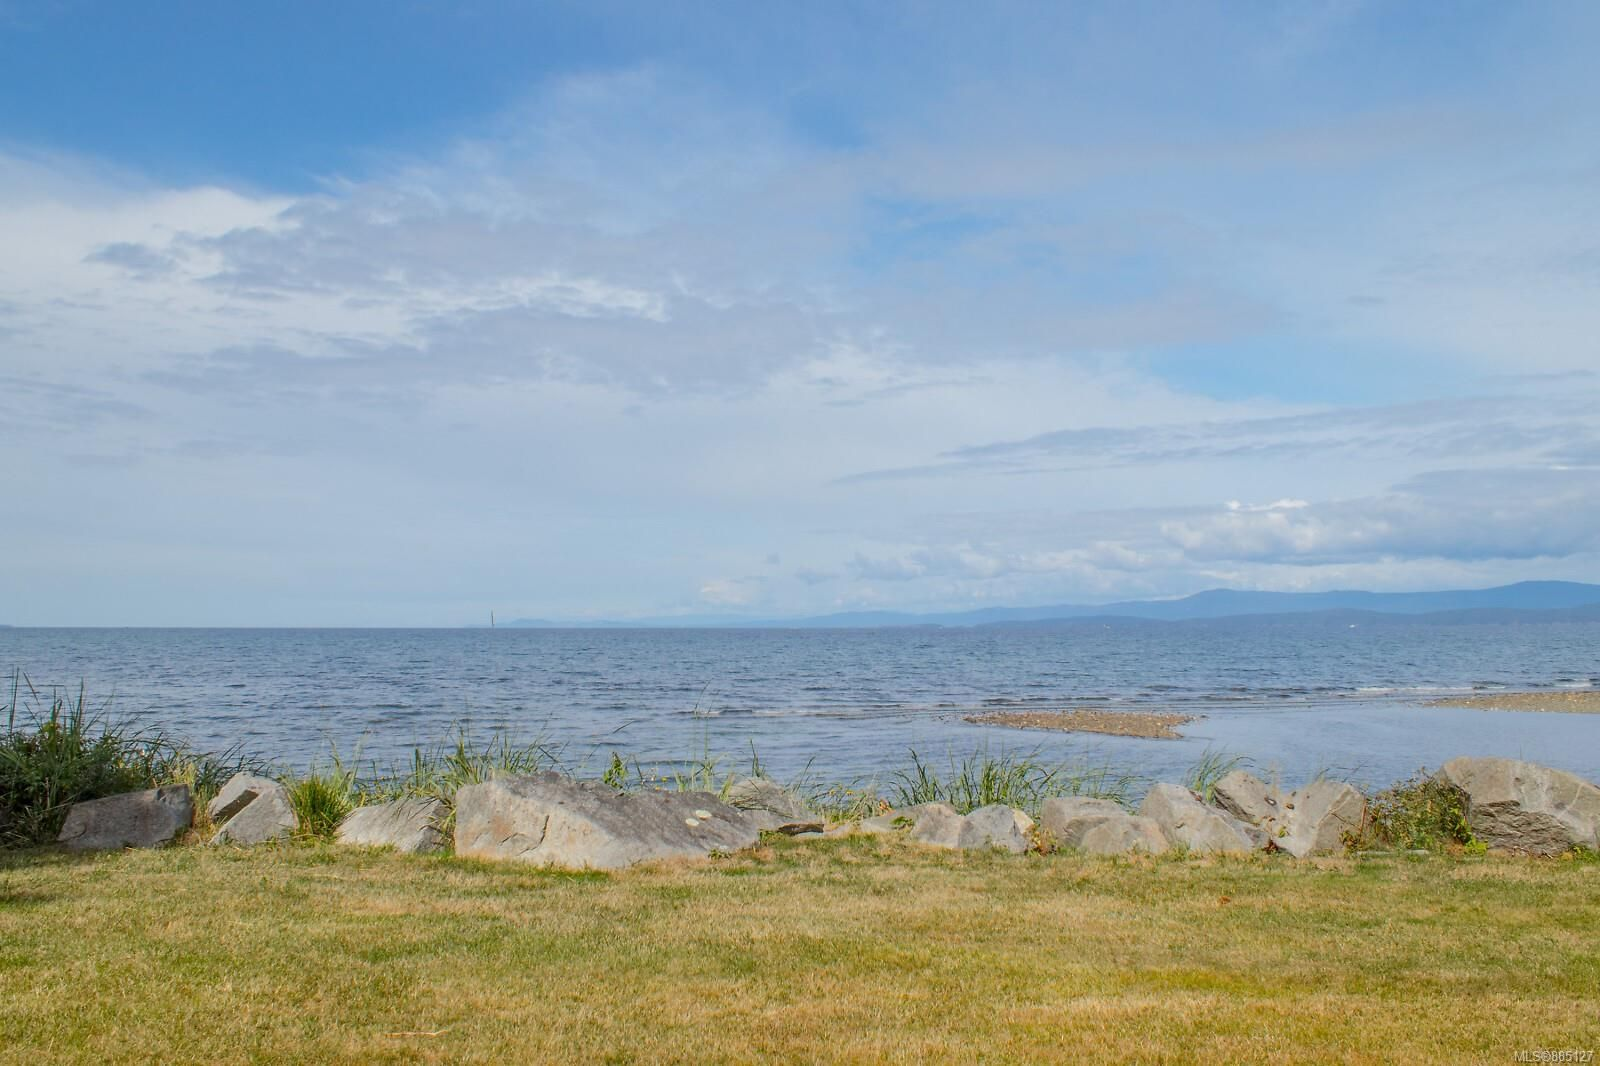 Photo 55: Photos: 26 529 Johnstone Rd in : PQ French Creek Row/Townhouse for sale (Parksville/Qualicum)  : MLS®# 885127